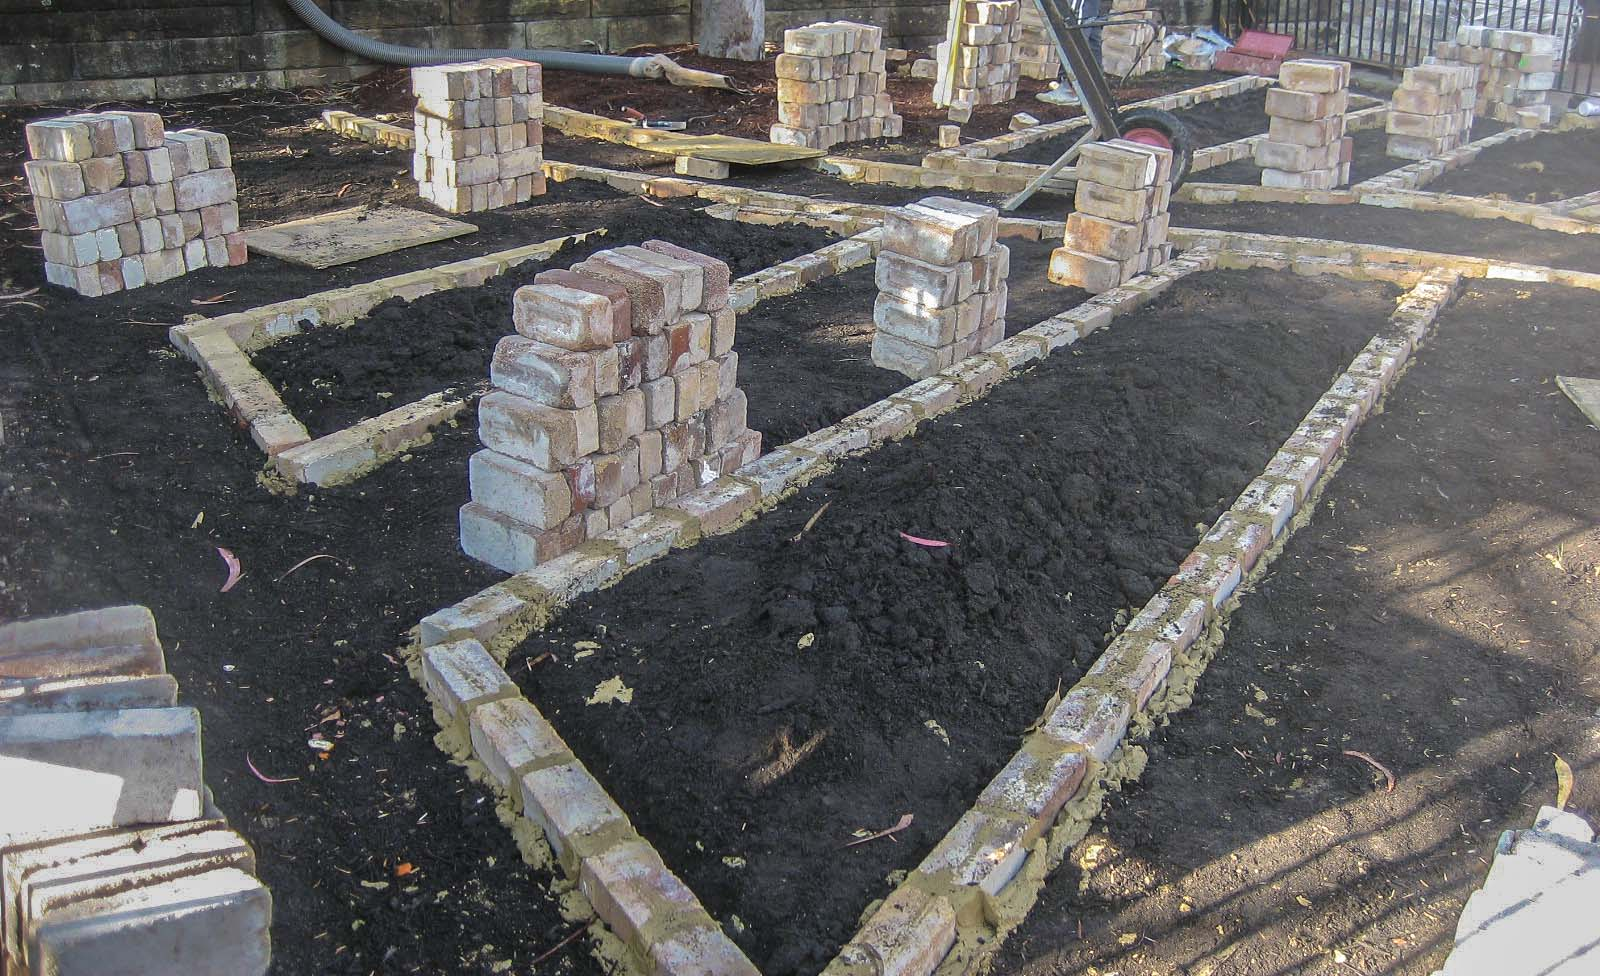 Construction of the recycled brick beds begins